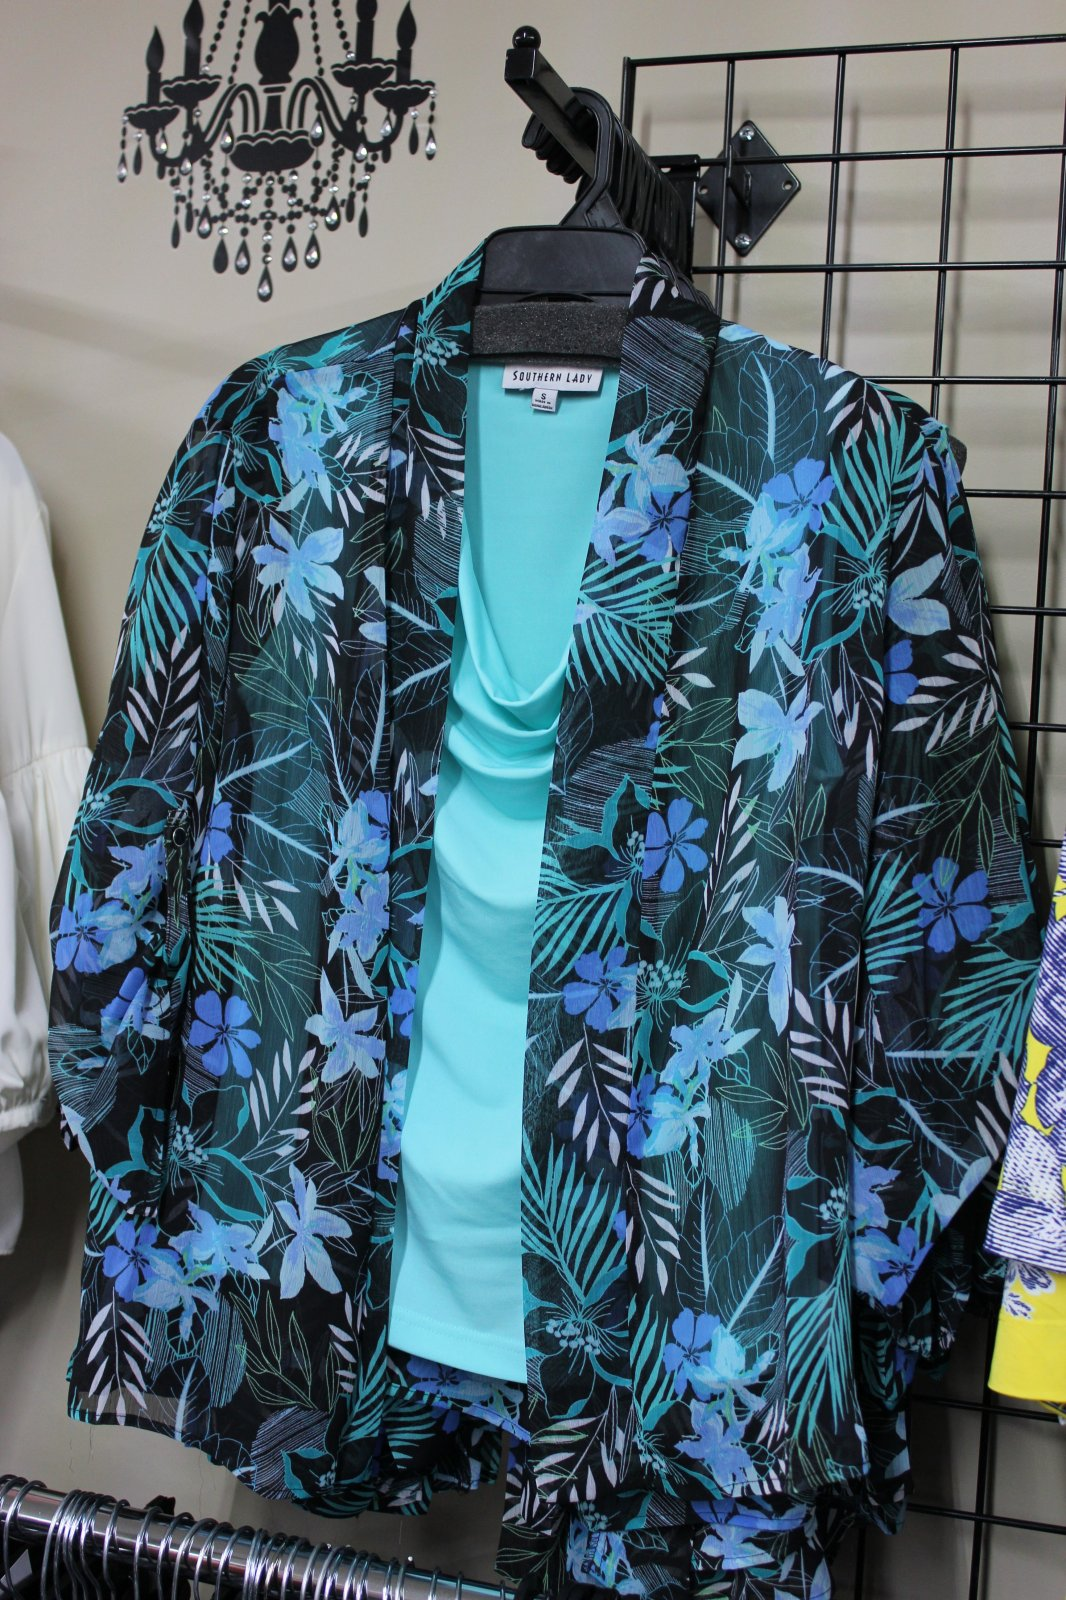 Southern Lady sheer cardigan